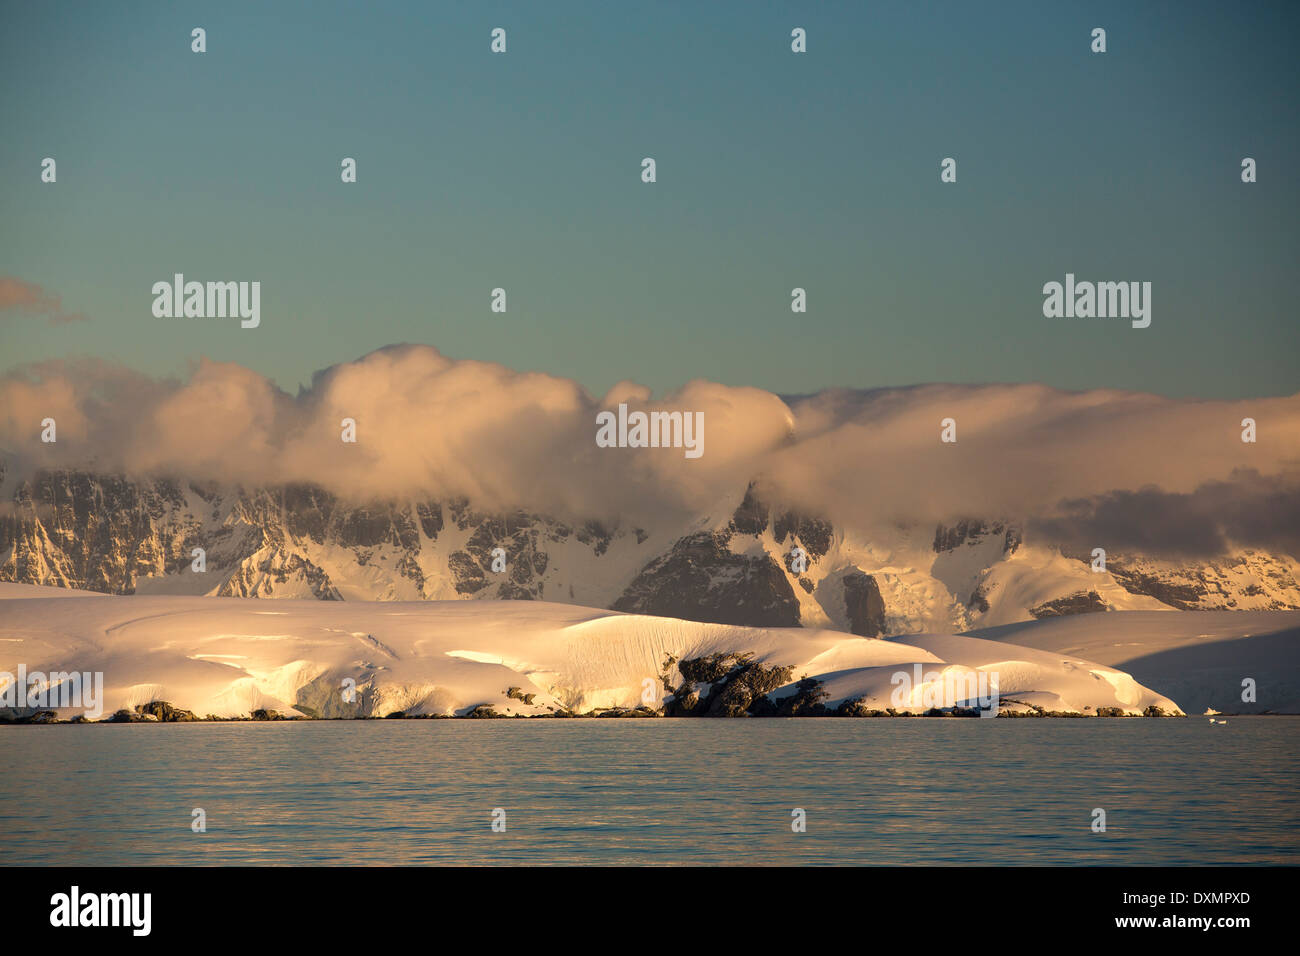 Evening light over mountains from the Gerlache Strait separating the Palmer Archipelago from the Antarctic Peninsular Stock Photo